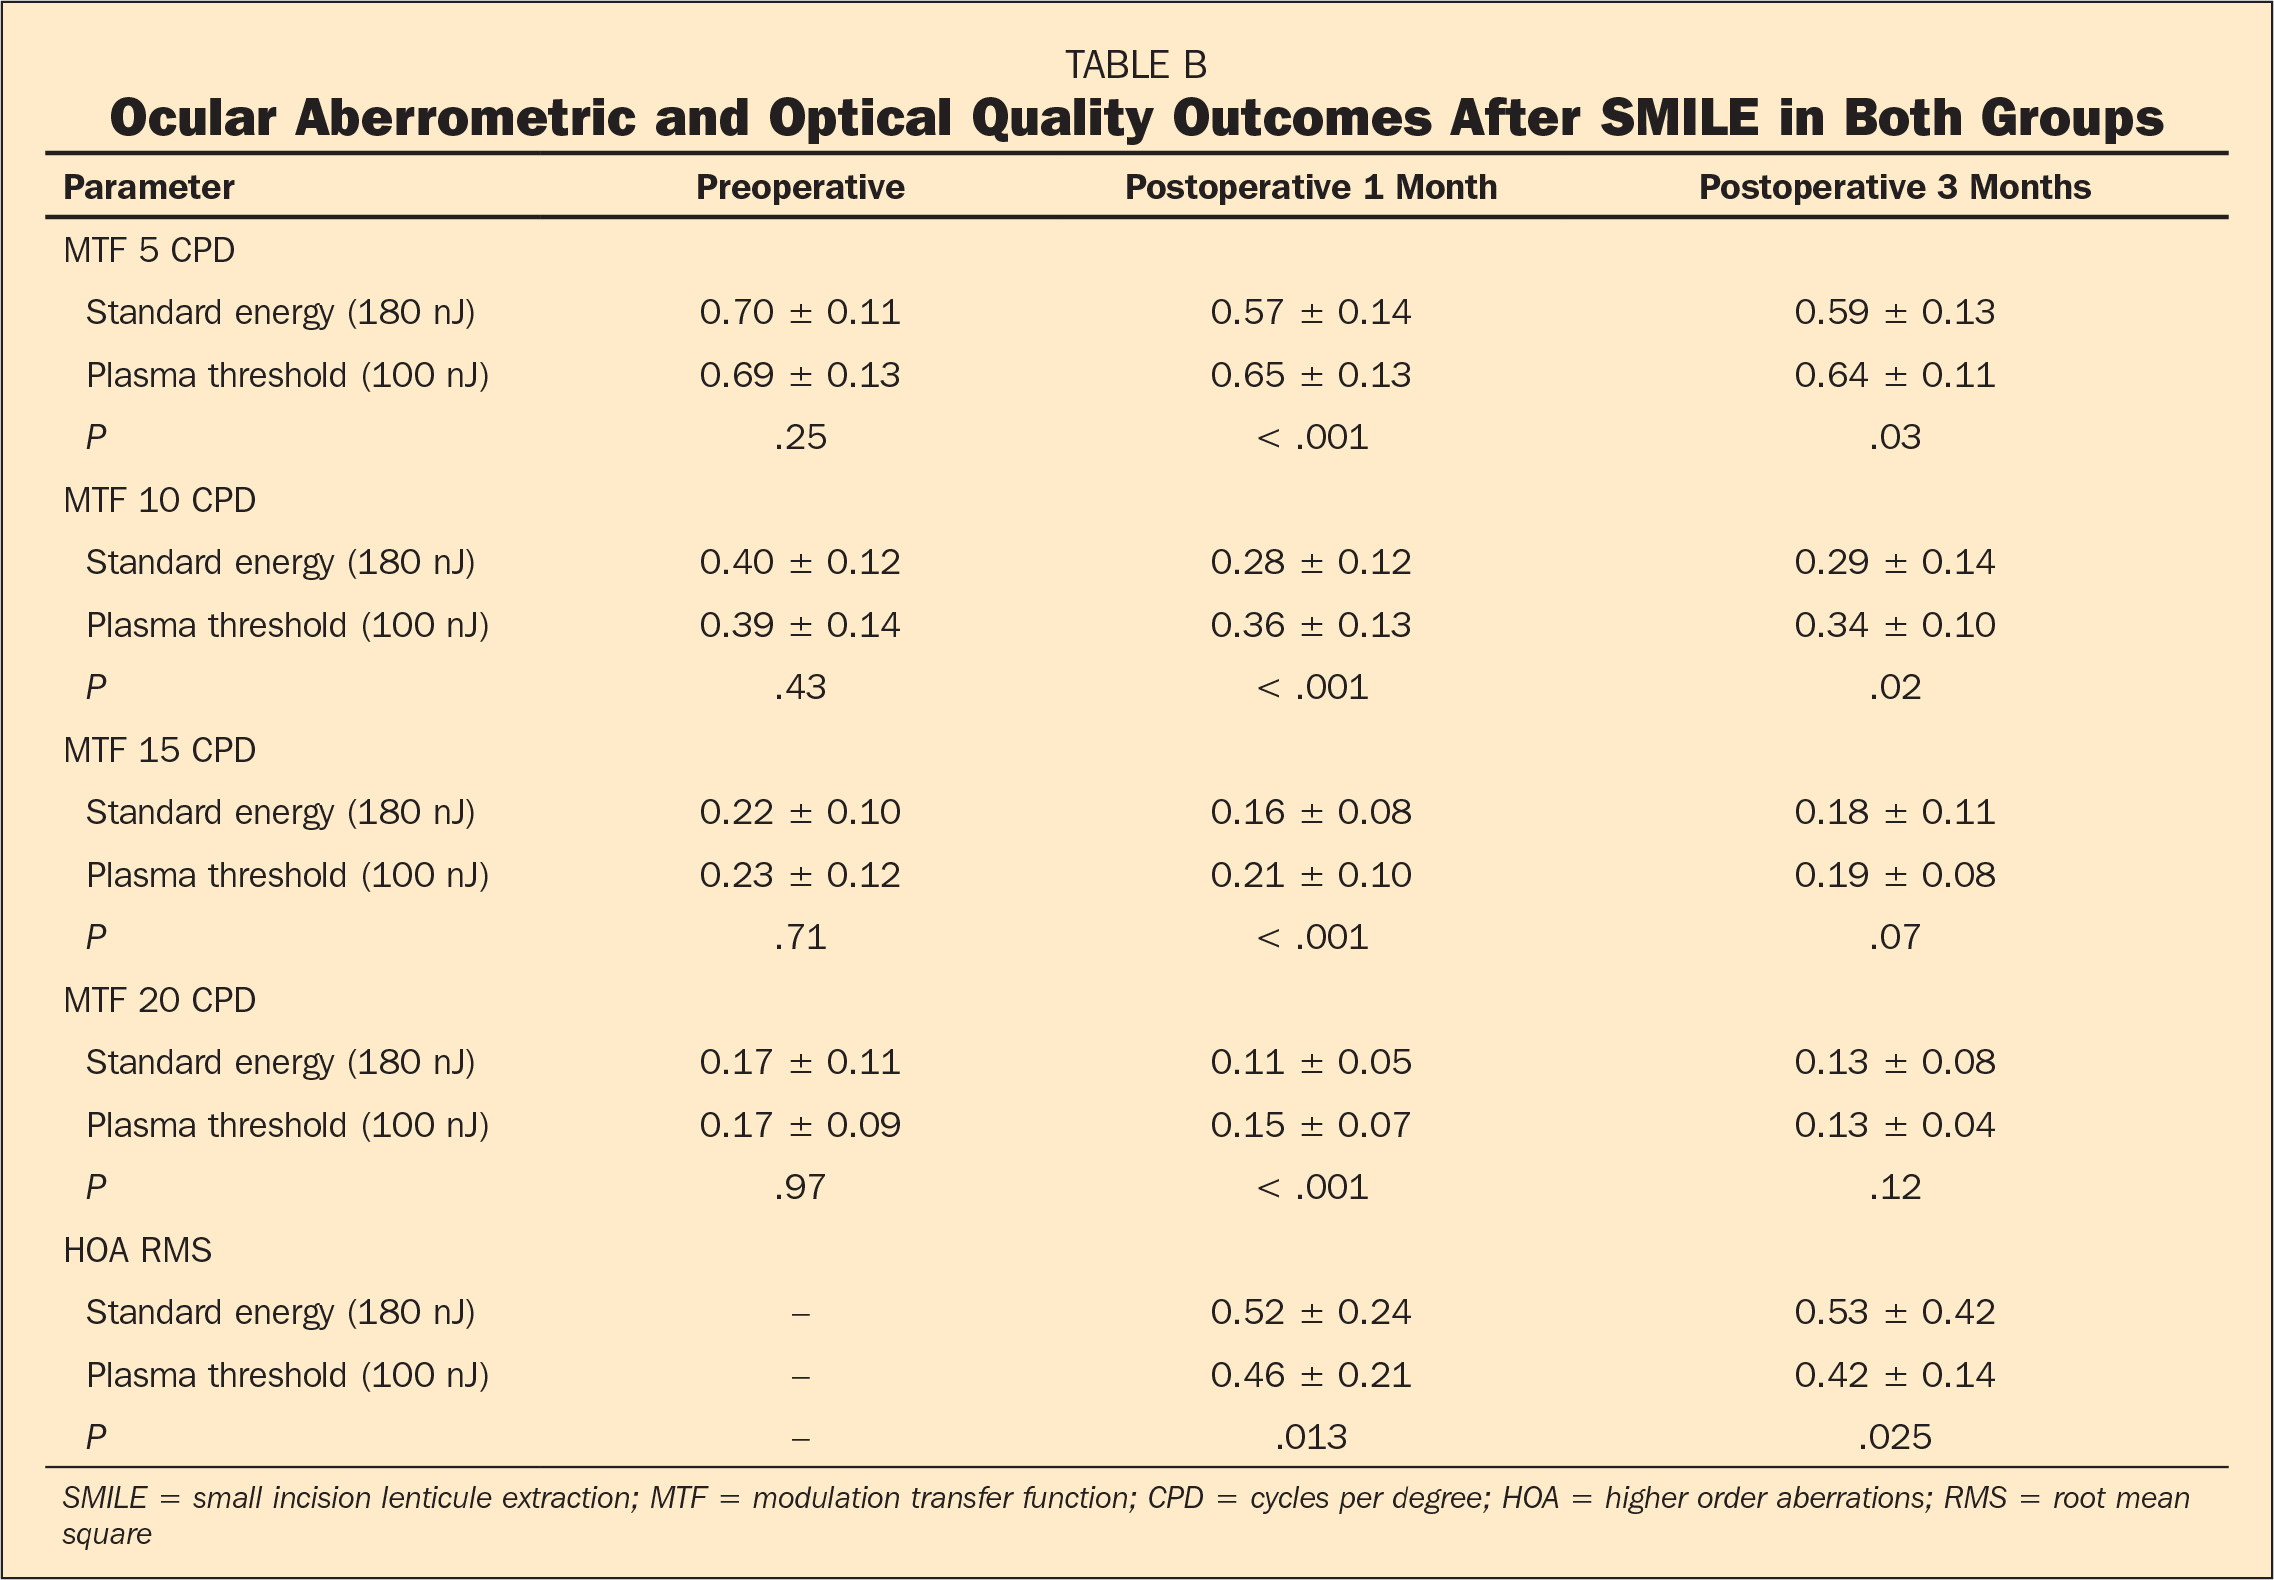 Ocular Aberrometric and Optical Quality Outcomes After SMILE in Both Groups